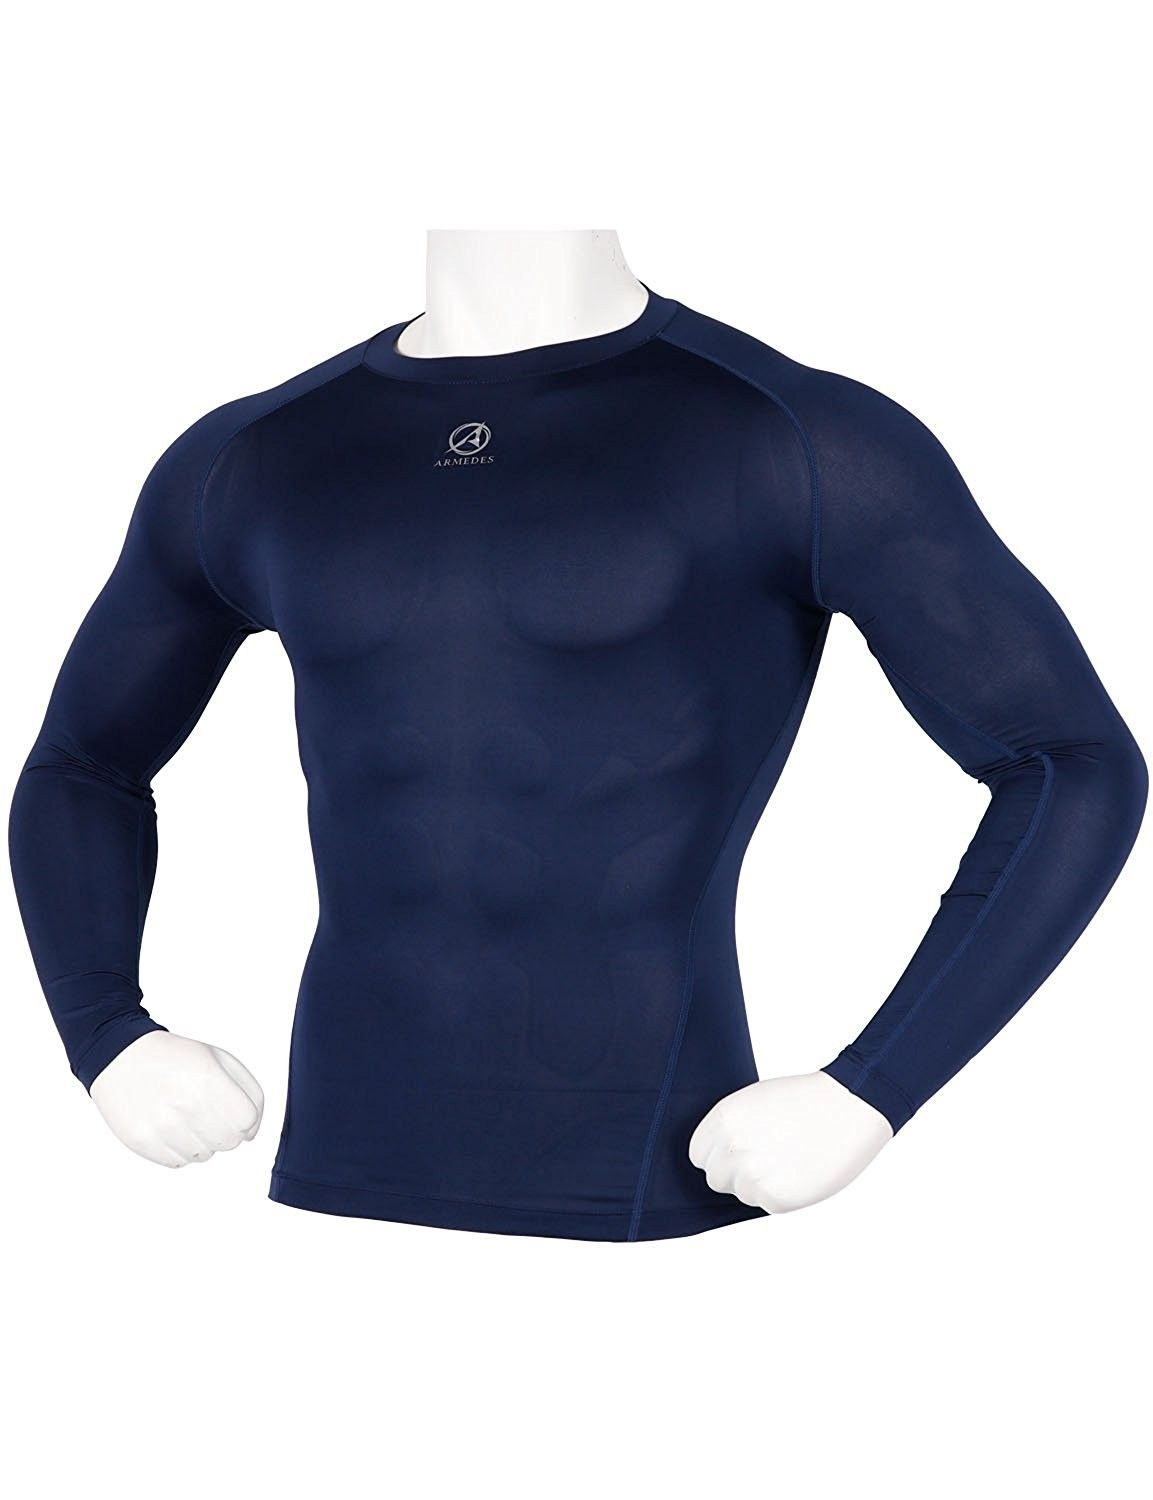 bd904765eb22a ARMEDES Men's Compression Quick Dry Baselayer Activewear Light Weight Long  Sleeve T-Shirt - Kmct01_navy - CX189TLS6IY,Men's Clothing, Active, Active  Base ...